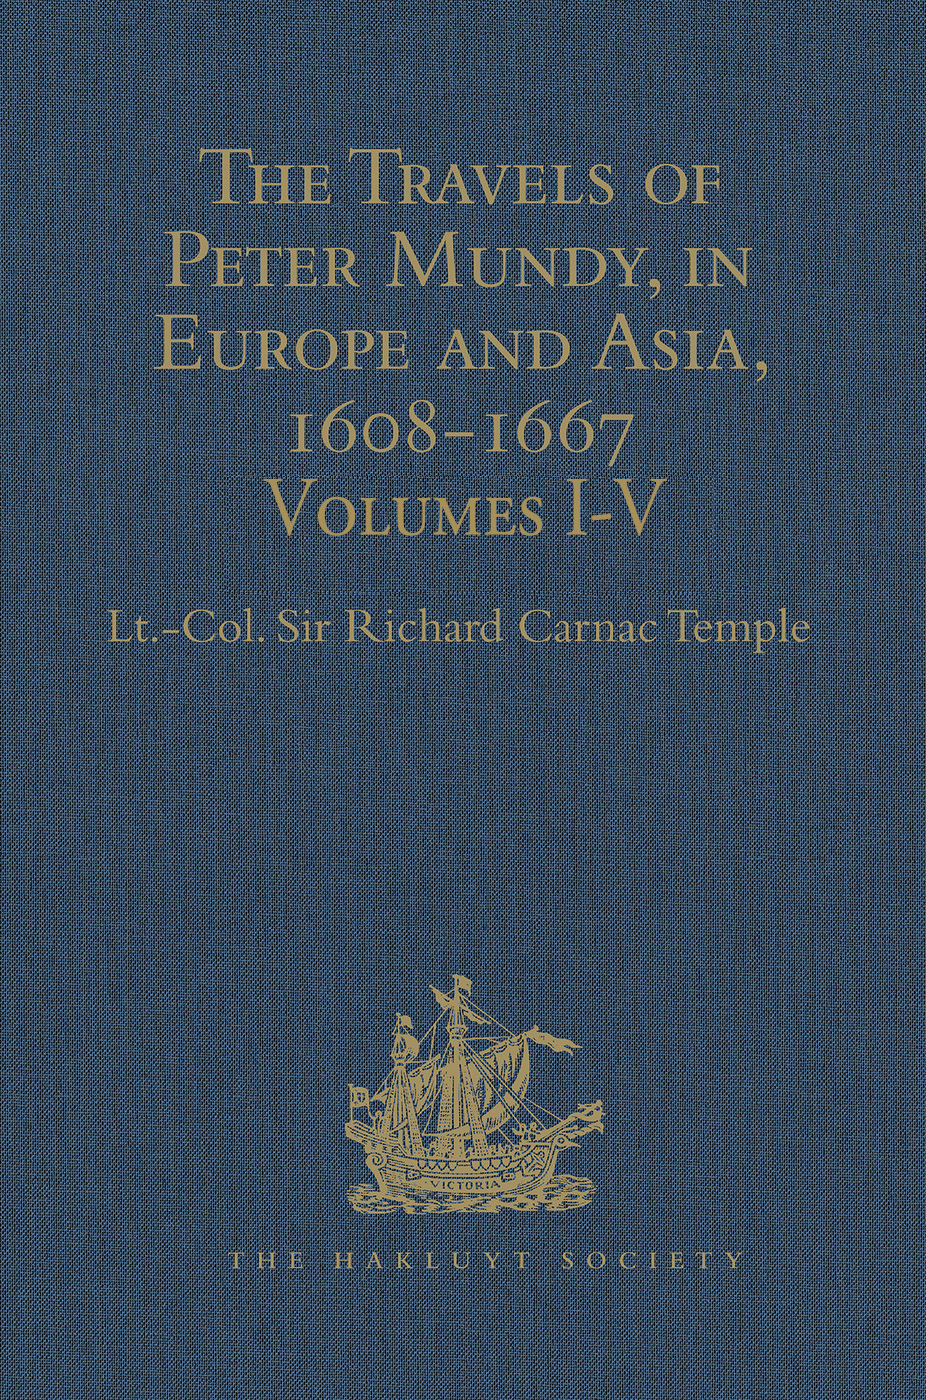 The Travels of Peter Mundy, in Europe and Asia, 1608-1667 Volumes I-V book cover